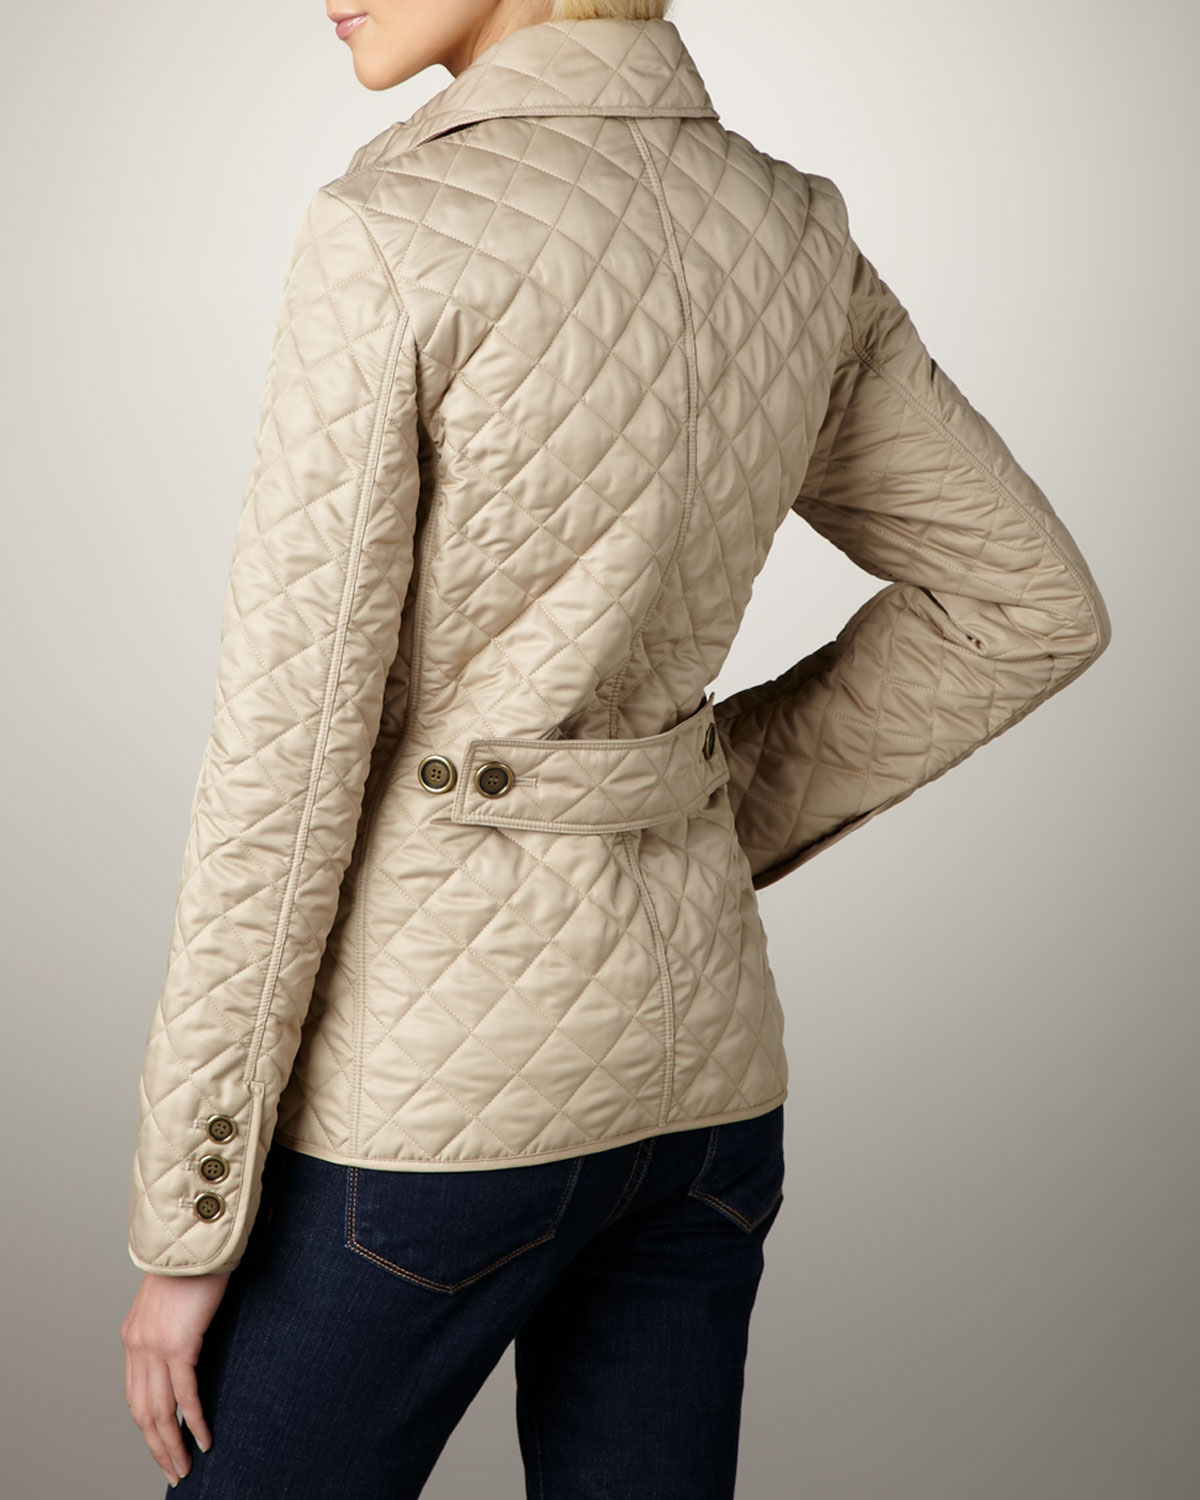 Burberry Copford Quilted Jacket, New Chino | Neiman Marcus : copford quilted jacket - Adamdwight.com